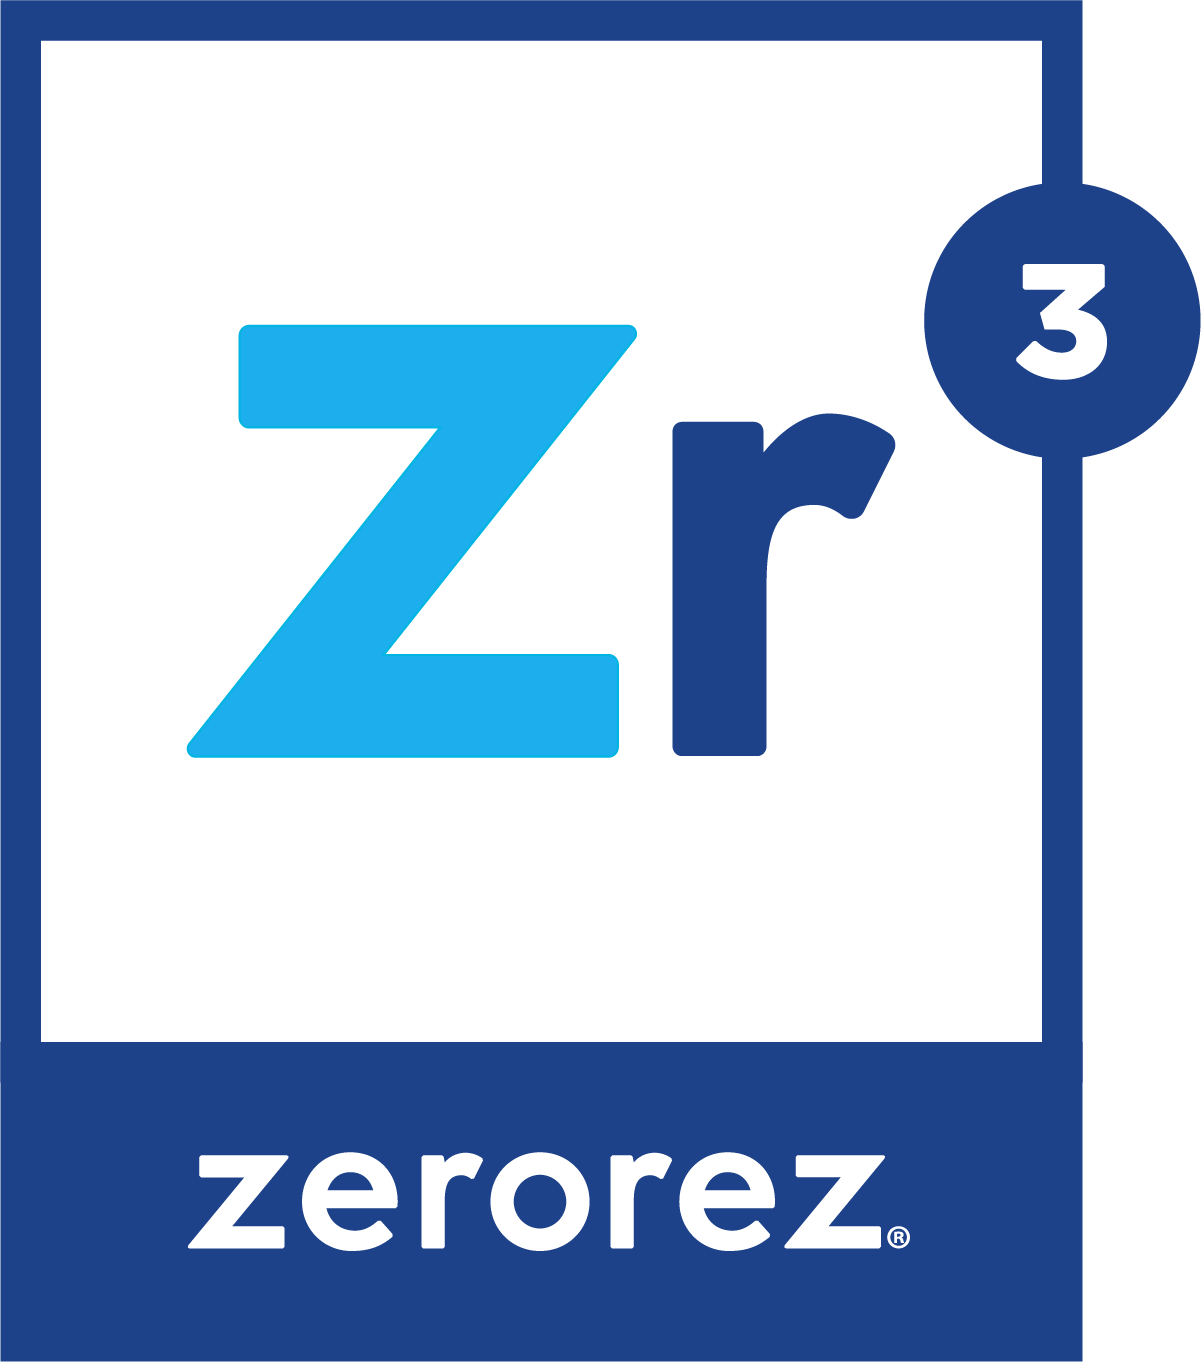 Zerorez Los Angeles/Ventura